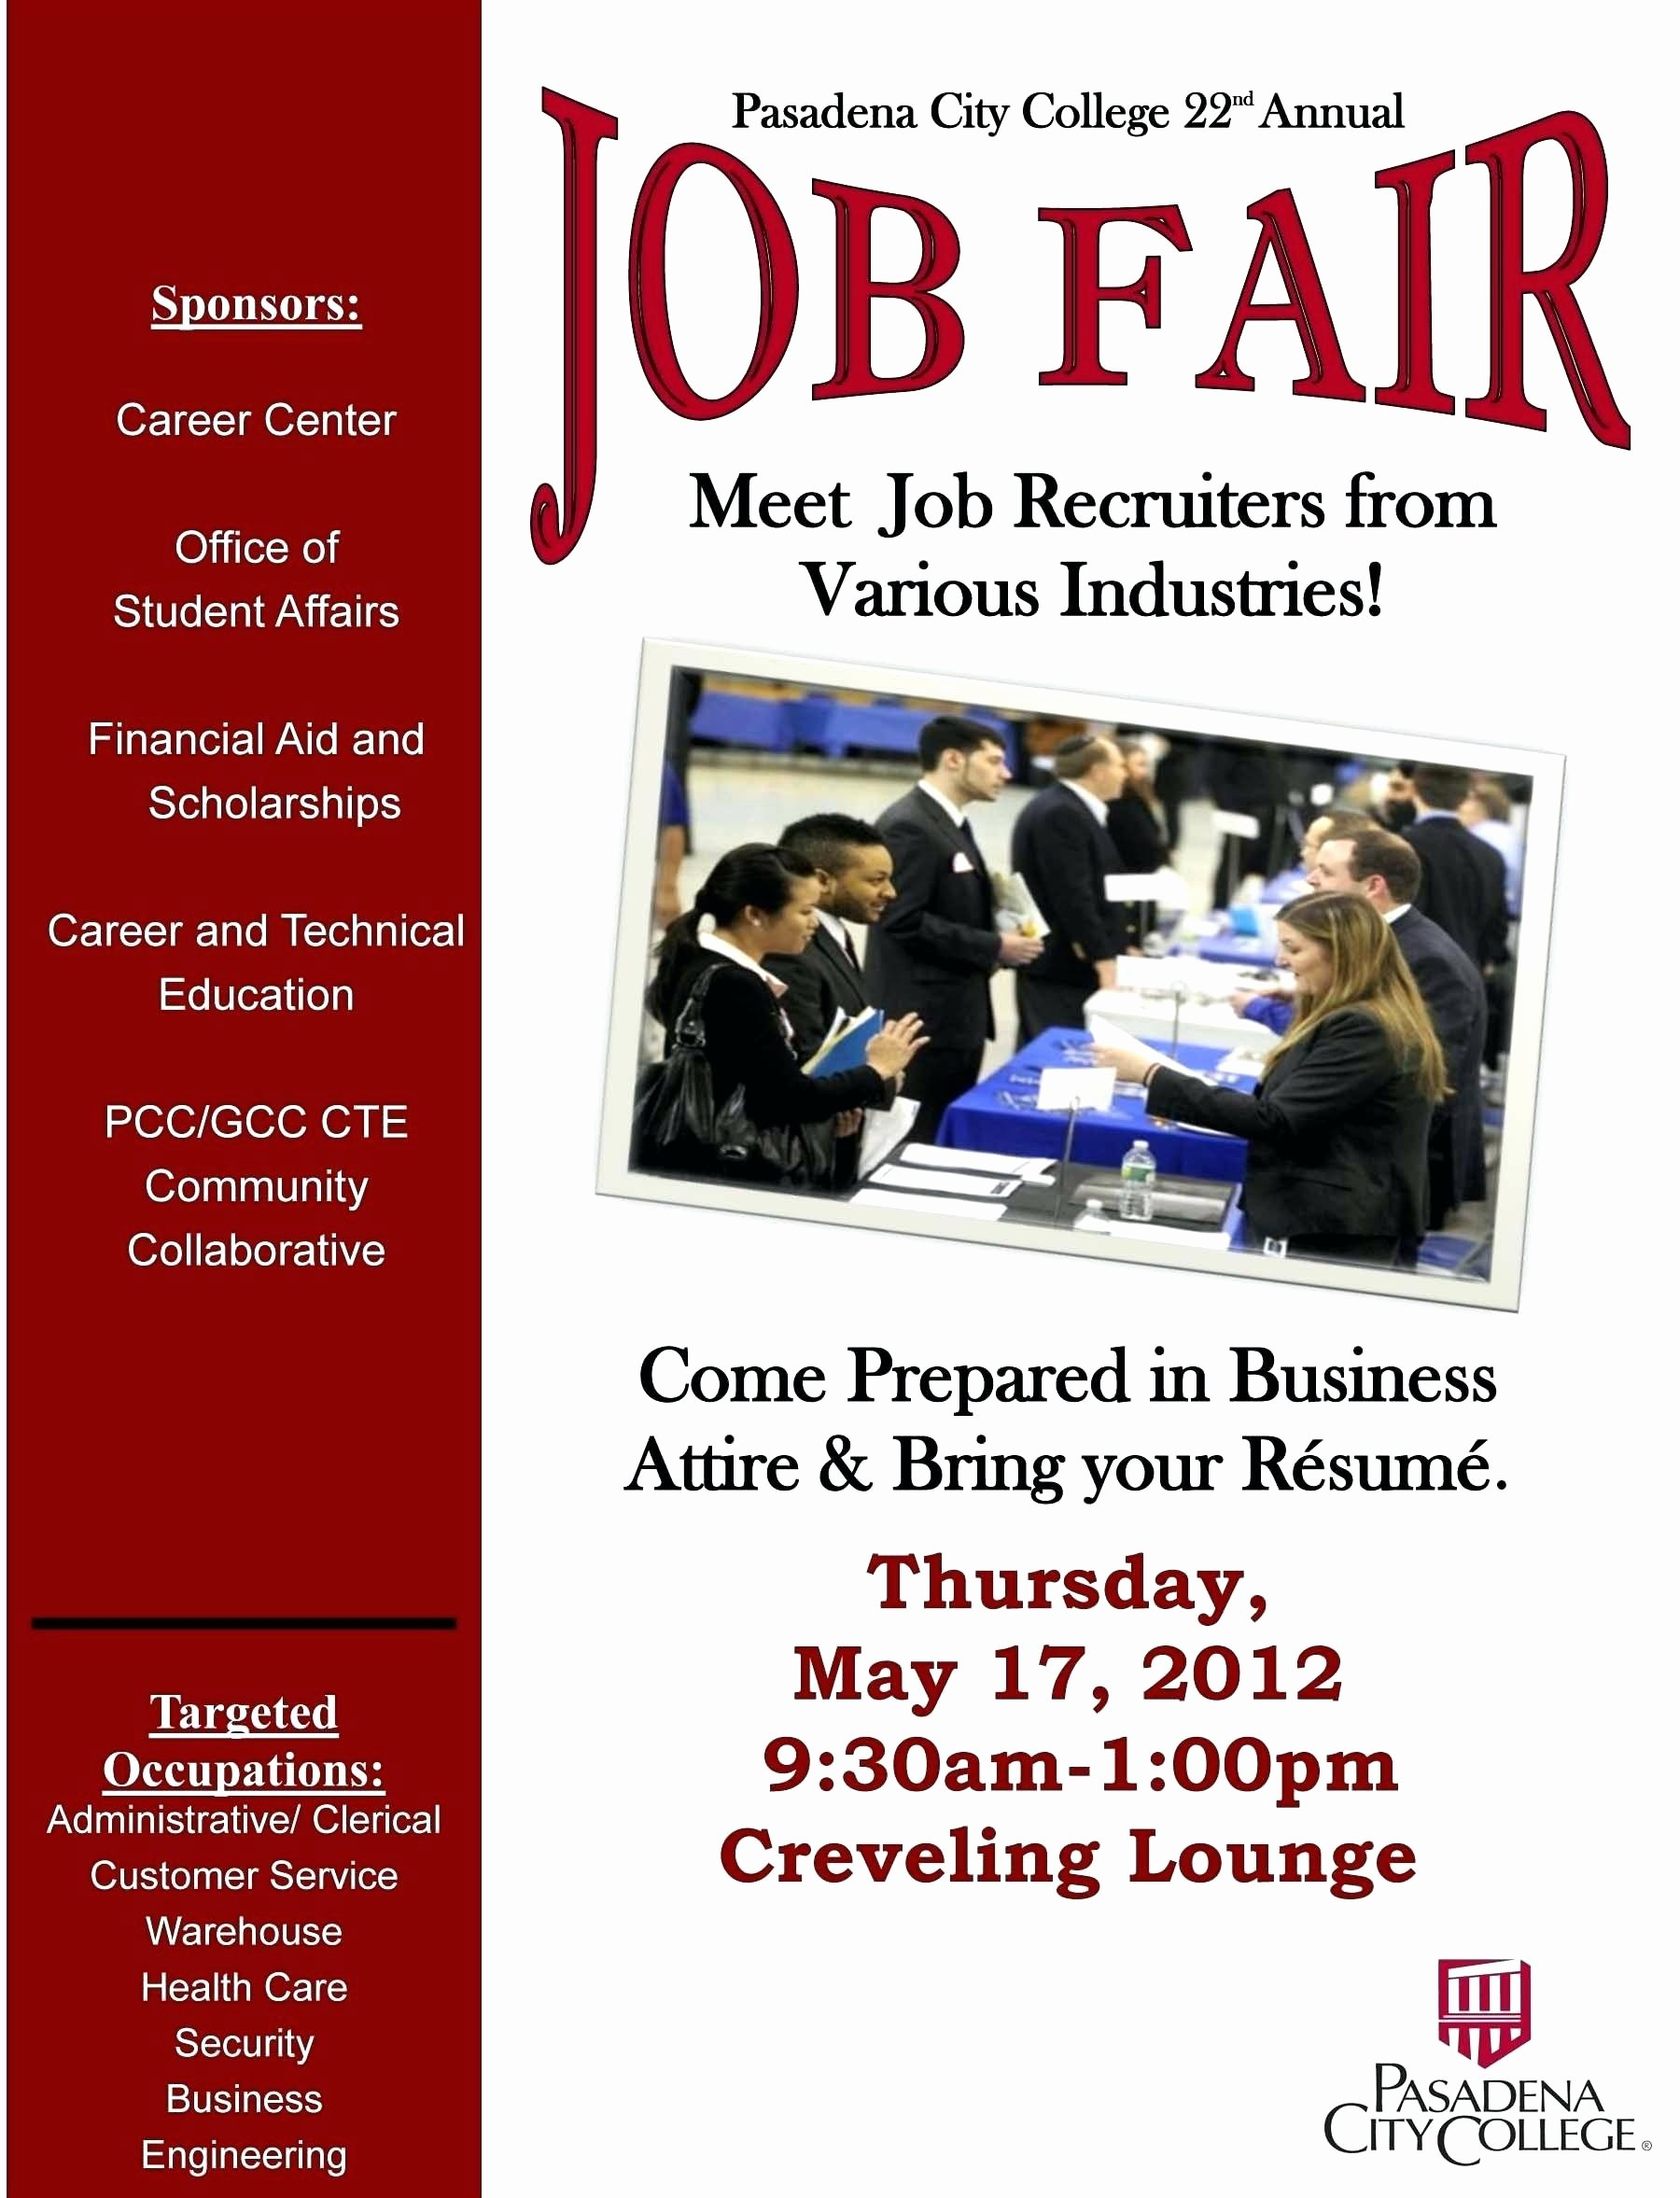 Job Fair Flyer Template Elegant Sample Job Fair Flyers